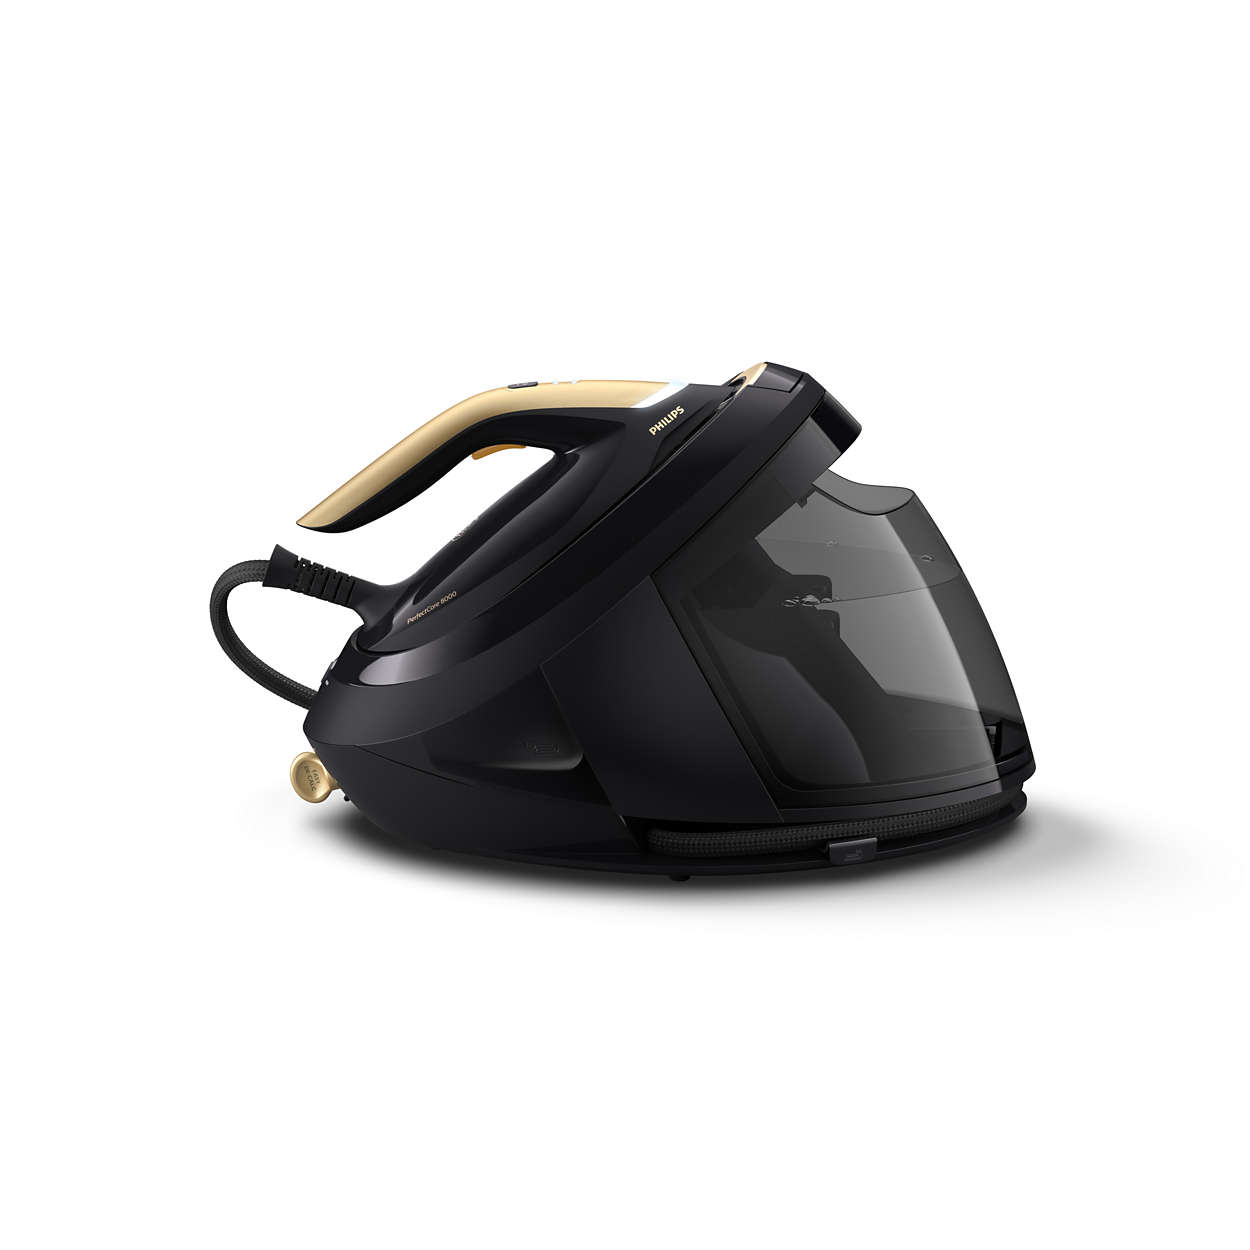 The iron that adapts steam to your ironing speed